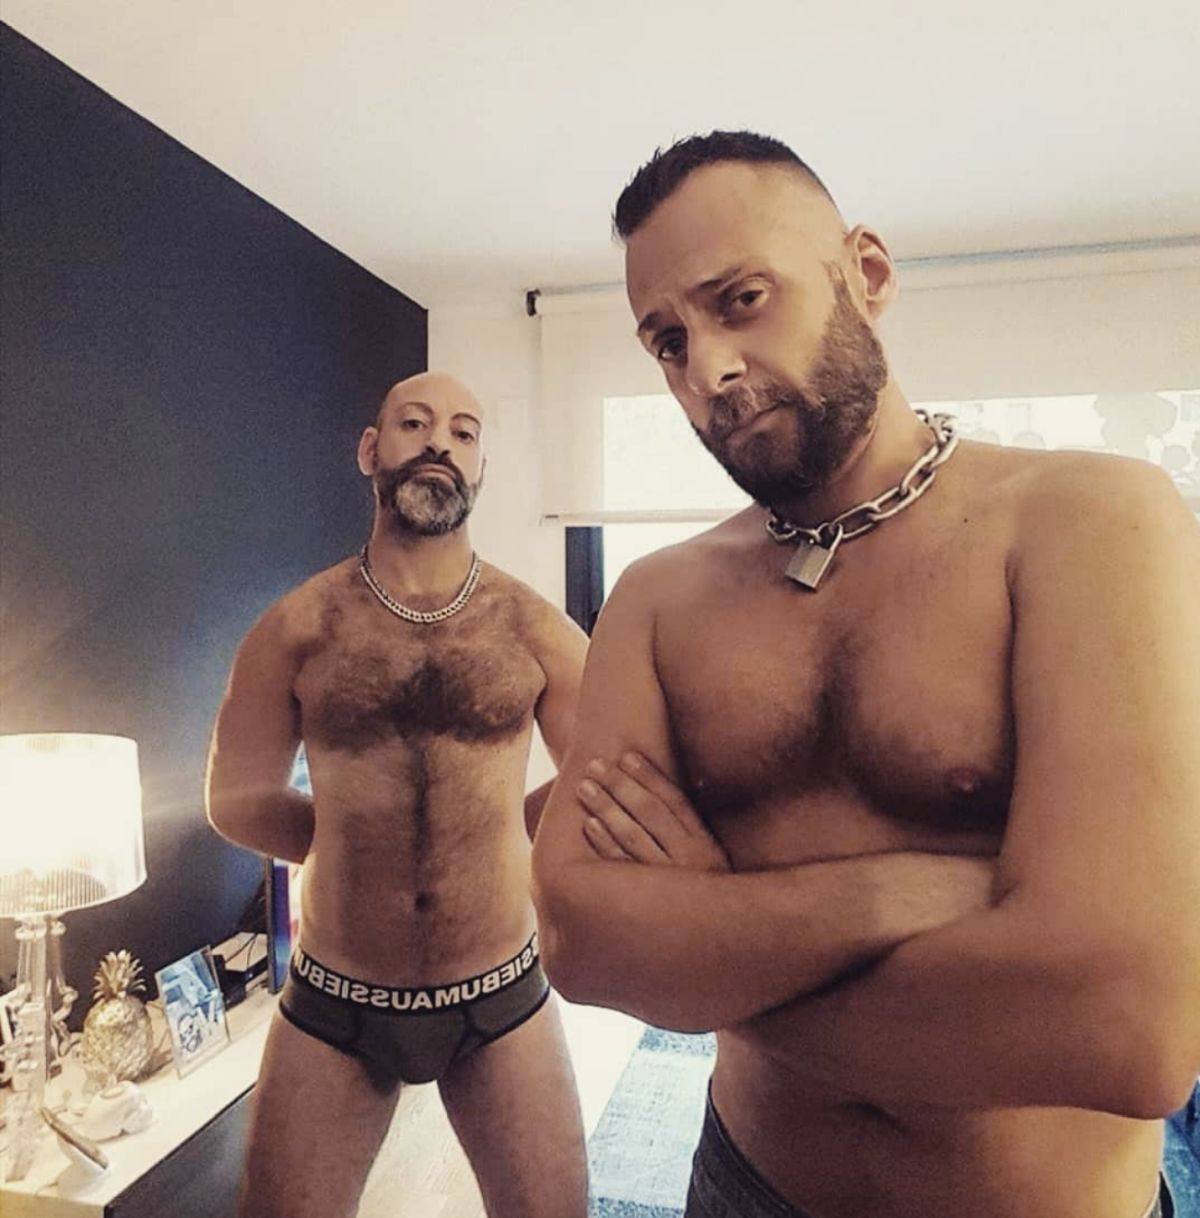 Free nudes of Leather couple of Barcelona onlyfans leaked